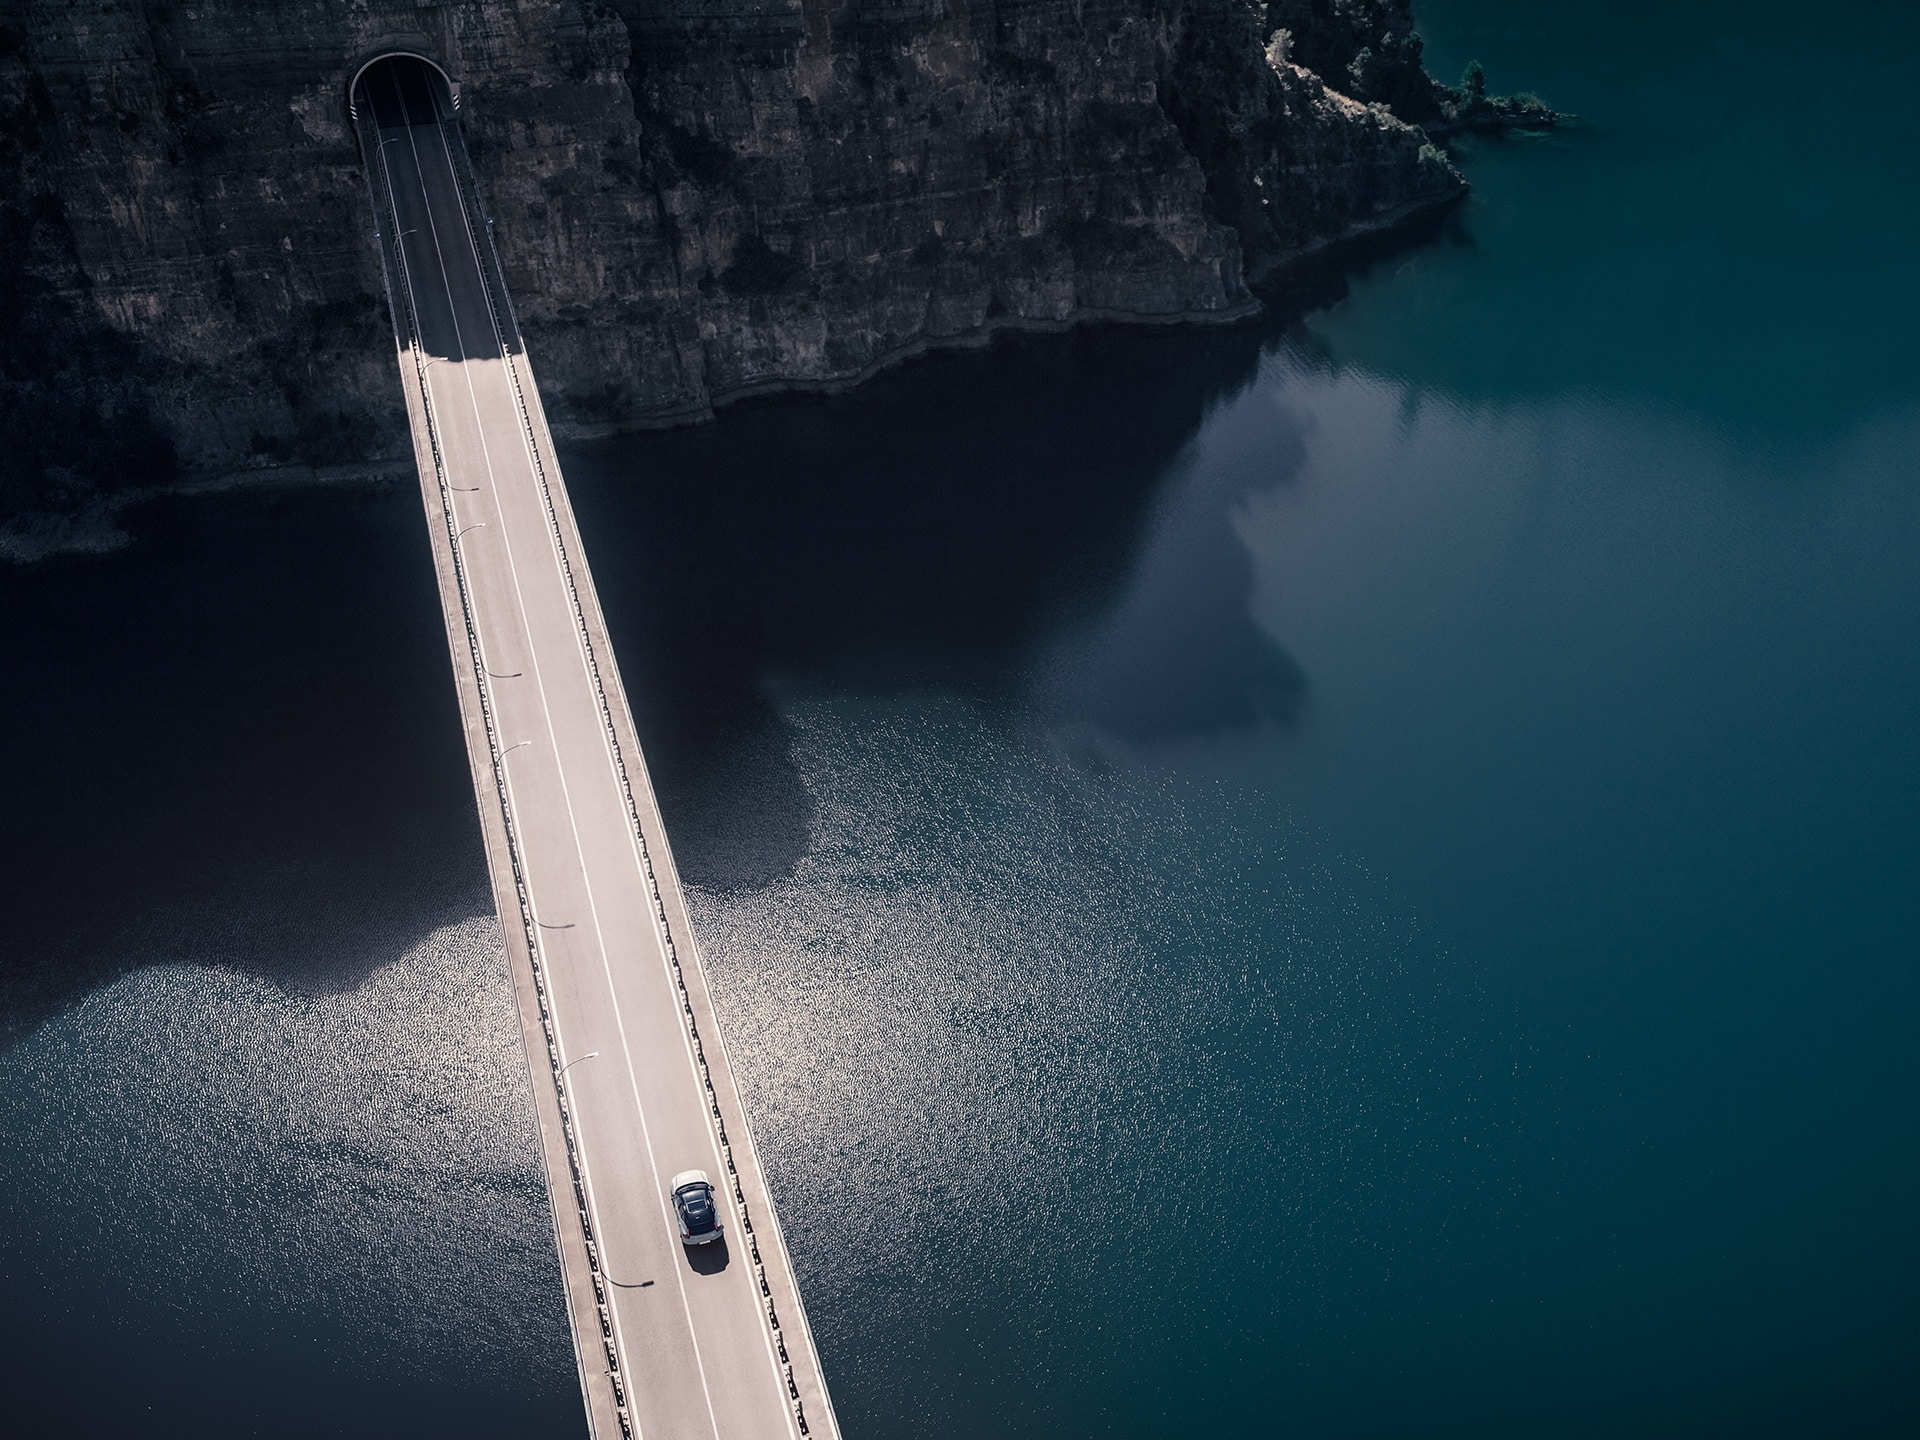 A Volvo XC40 Recharge drives on a bridge over the water that leads into a mountain tunnel.